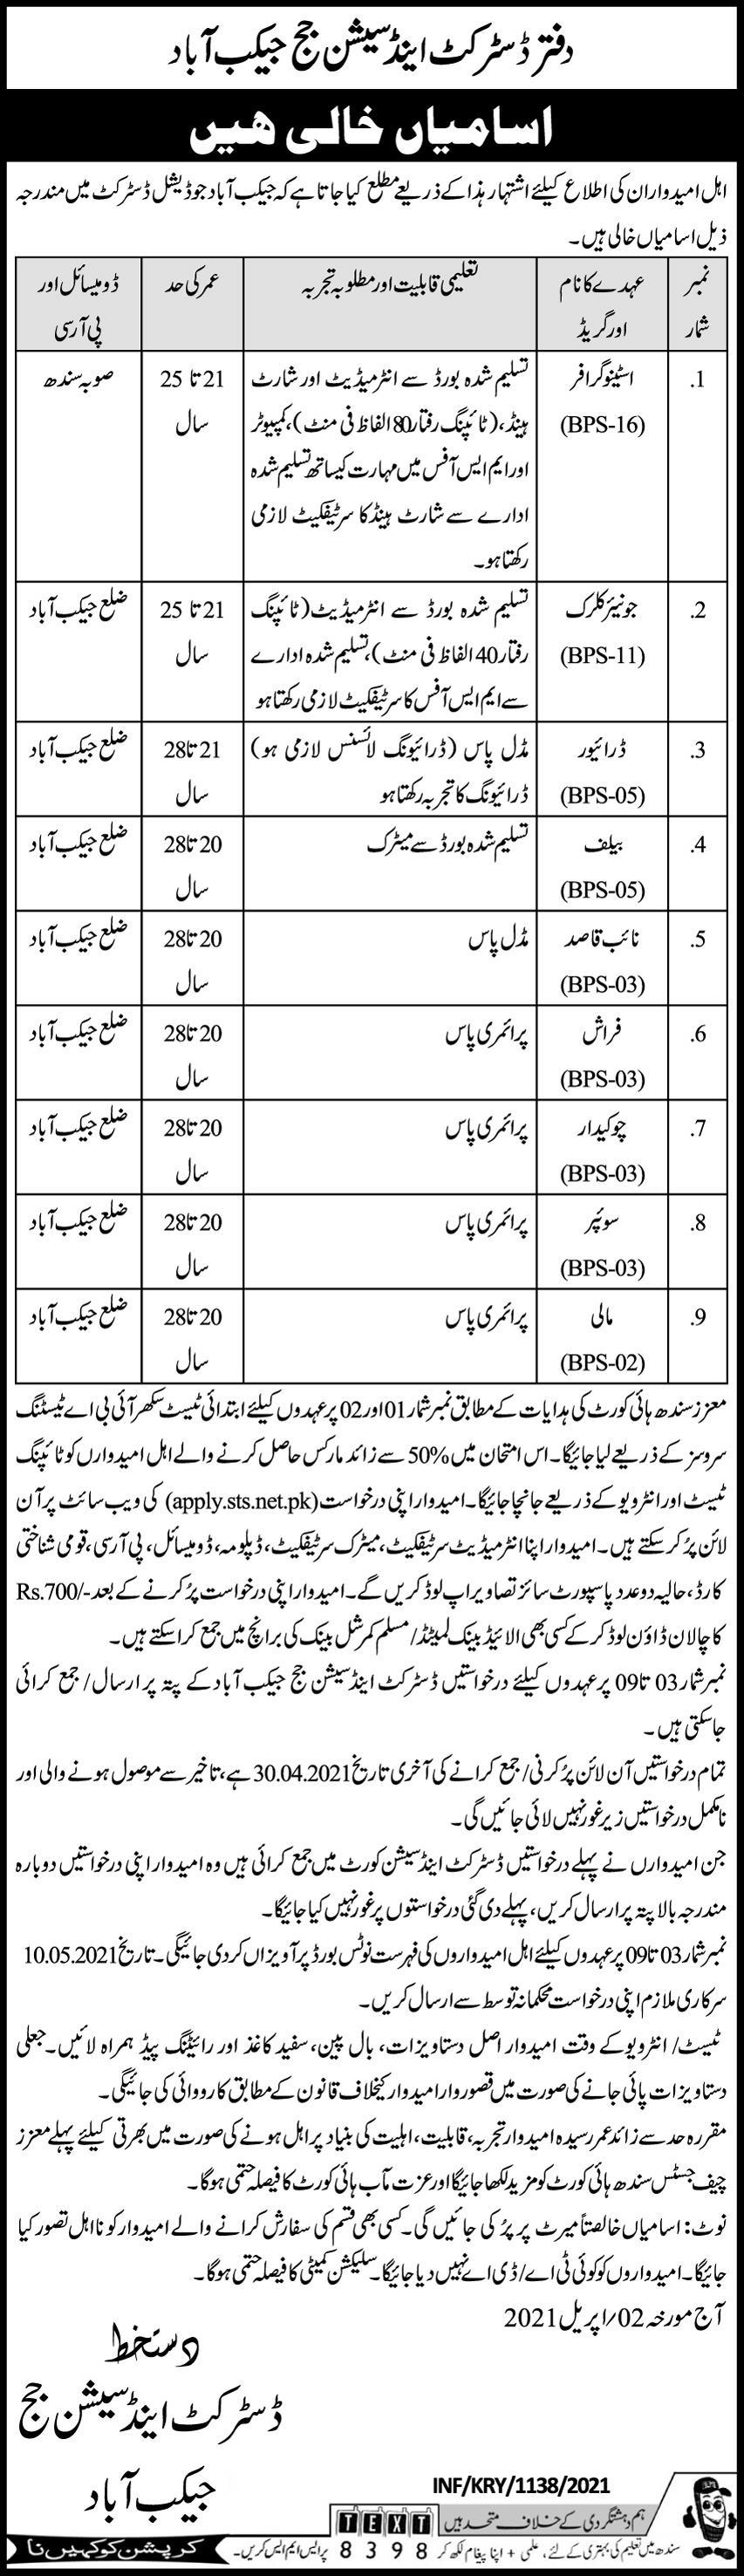 District & Session Court jobs newspaper ad for Belif in Jacobabad on 2021-04-08